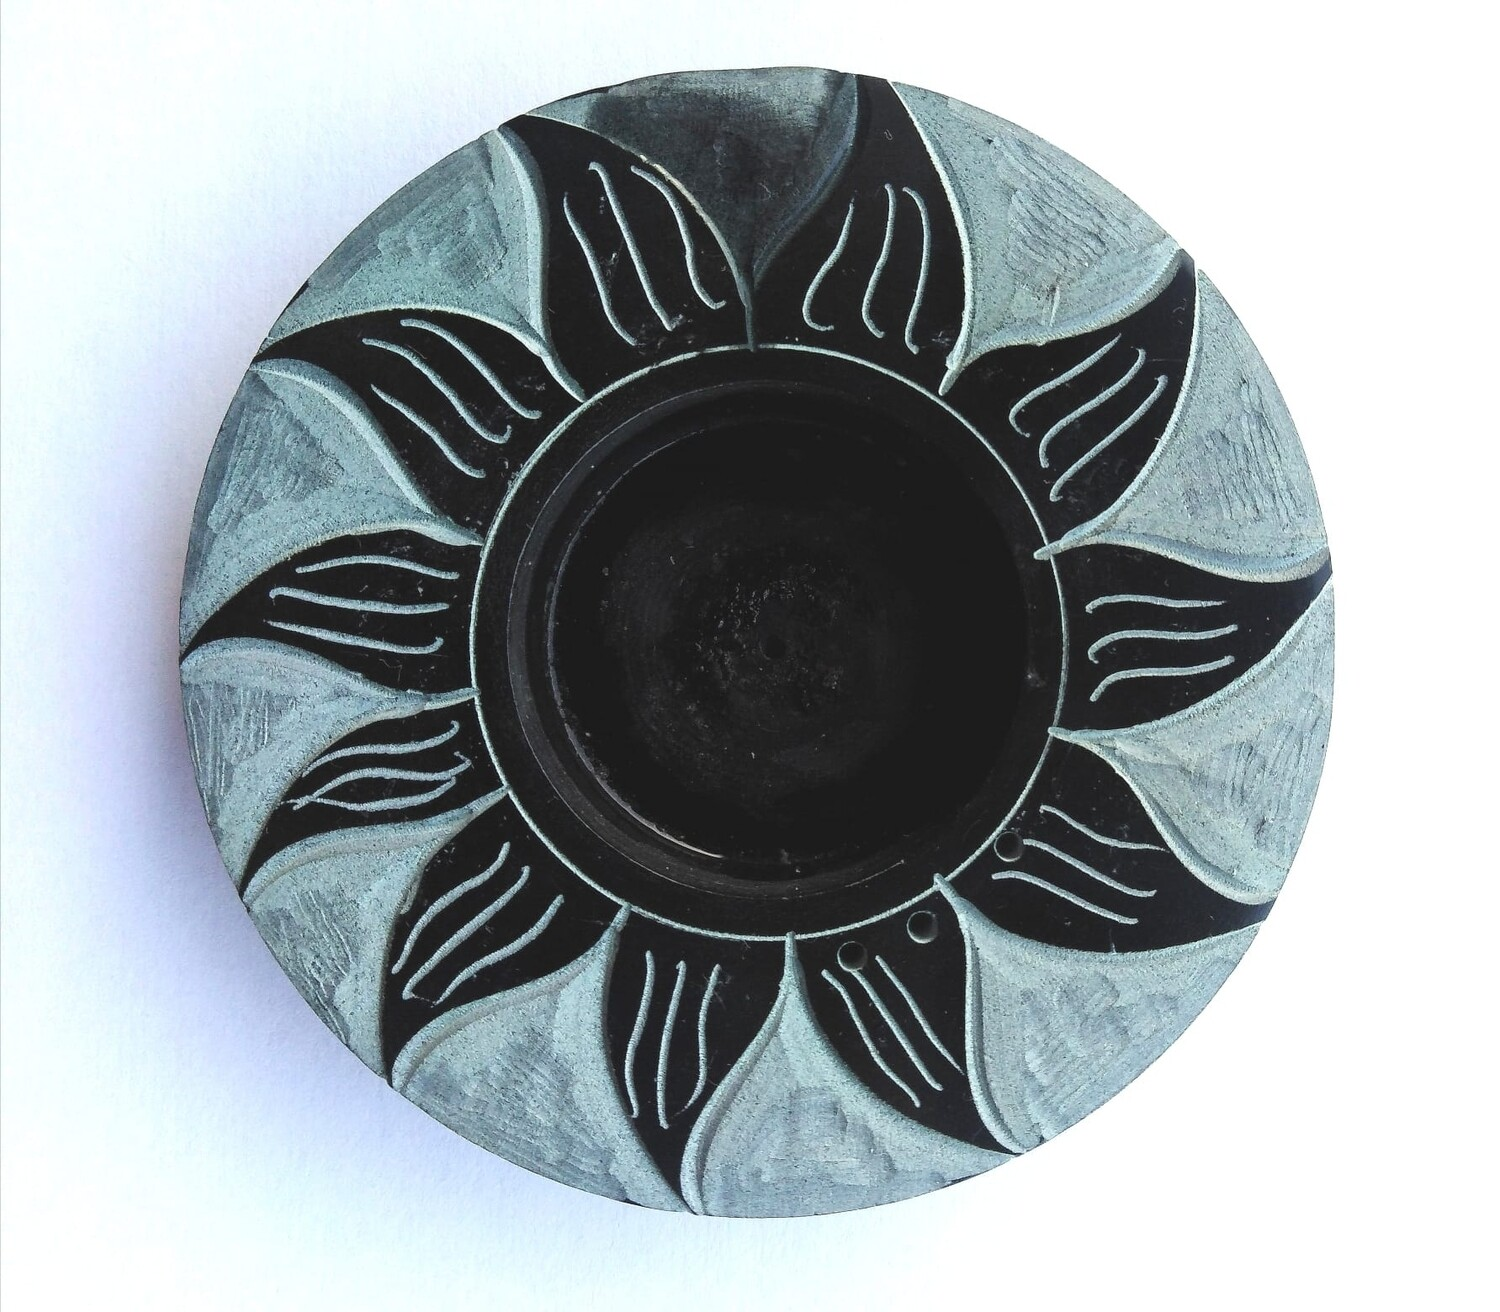 Incense Holder for Cones and Sticks and Tealights Sun